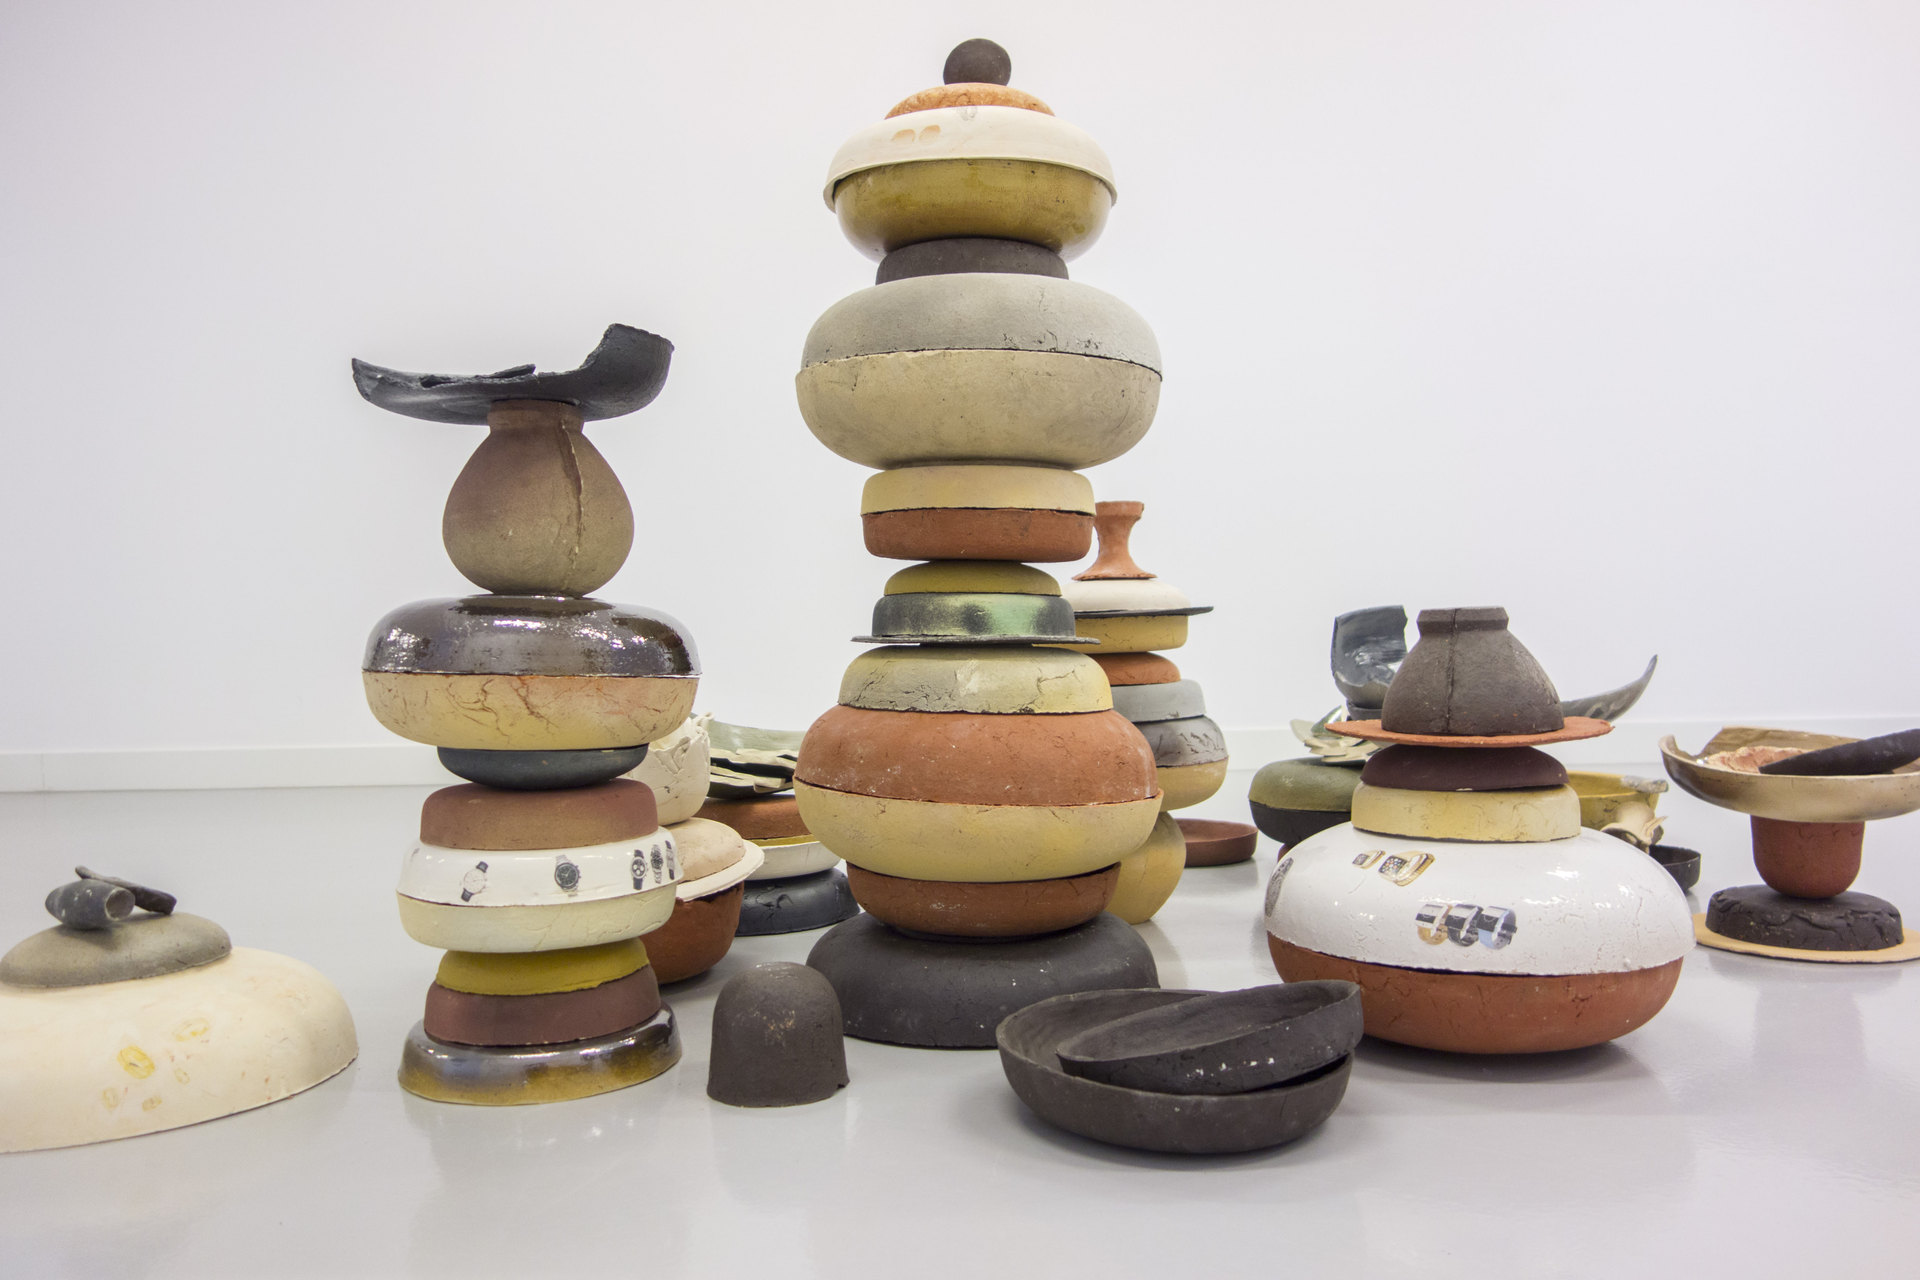 Thomas van Linge, Untitled (Bowls), 2014, dimensions variable, detail